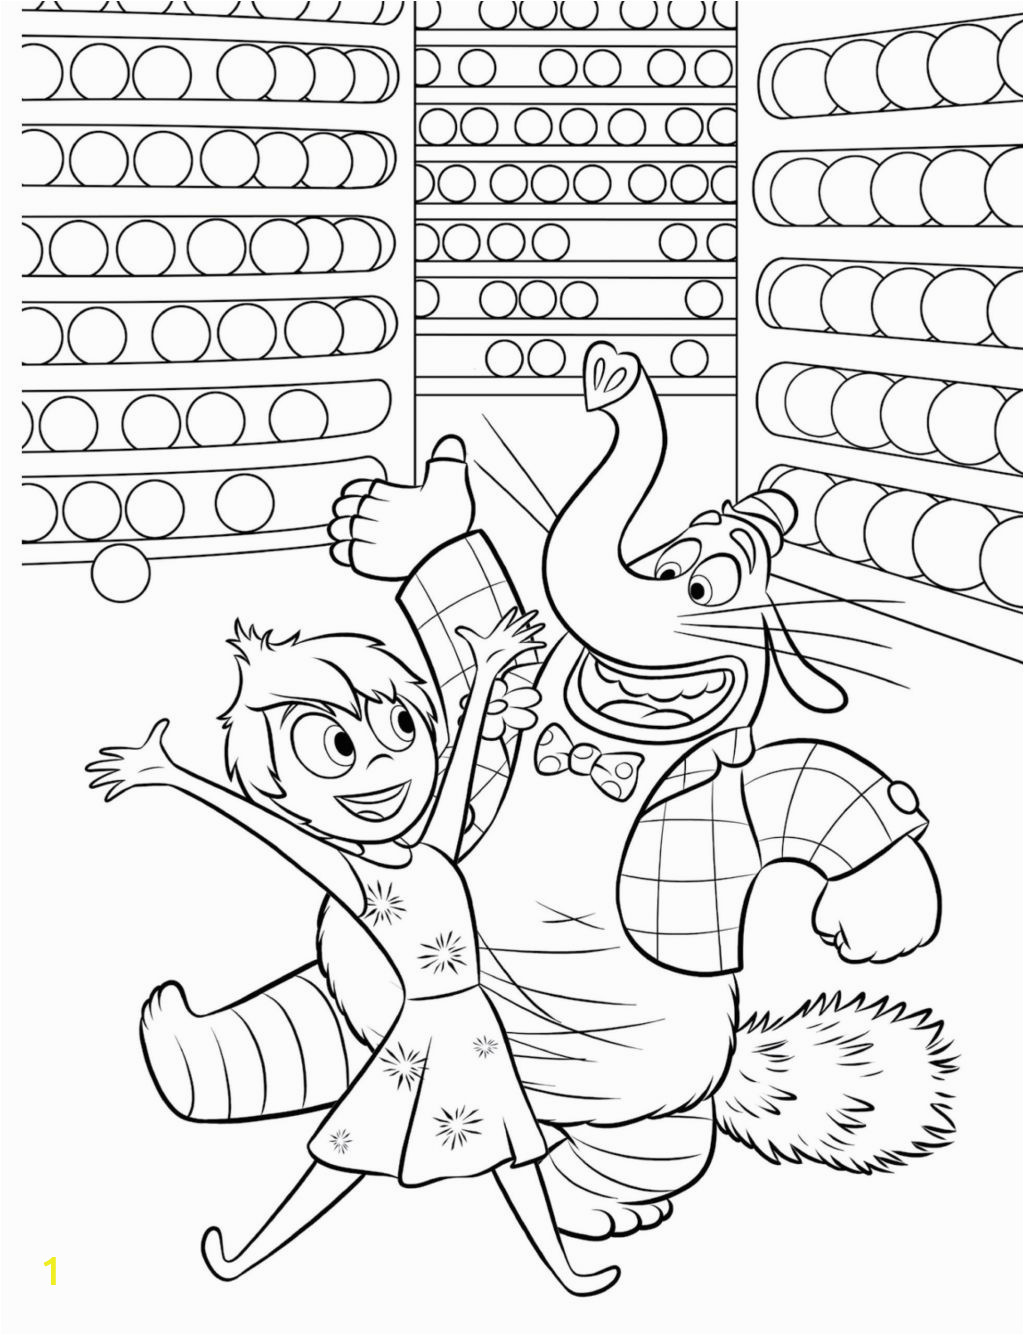 easter egg coloring sheets free printable new coloring pages pin by carmen rodriguez coloring and fun of easter egg coloring sheets free printable 1024x1335